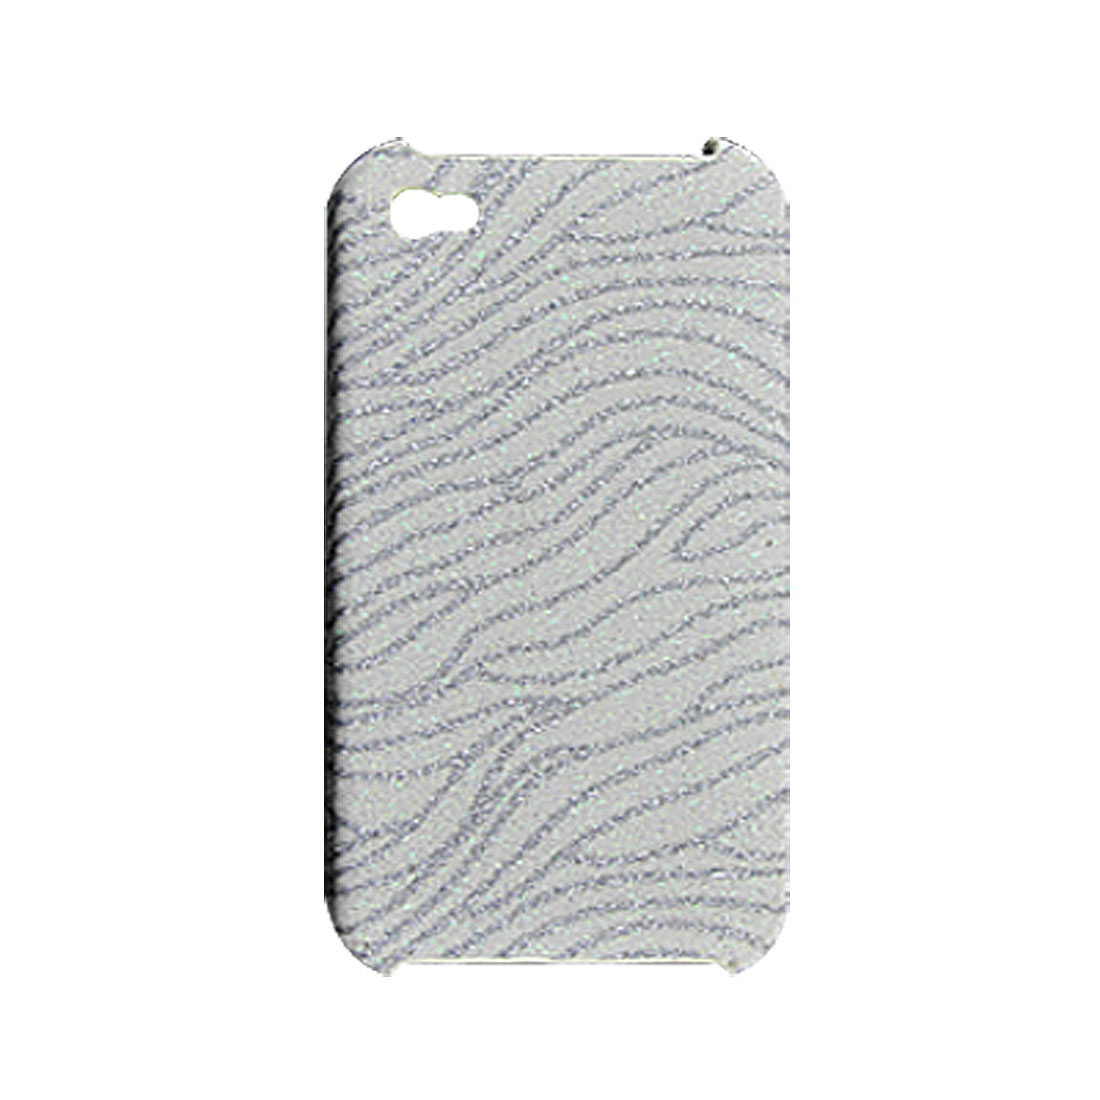 Skidproof Glittery Zebra Print White Silver Tone Hard Case for iPhone 4 4G